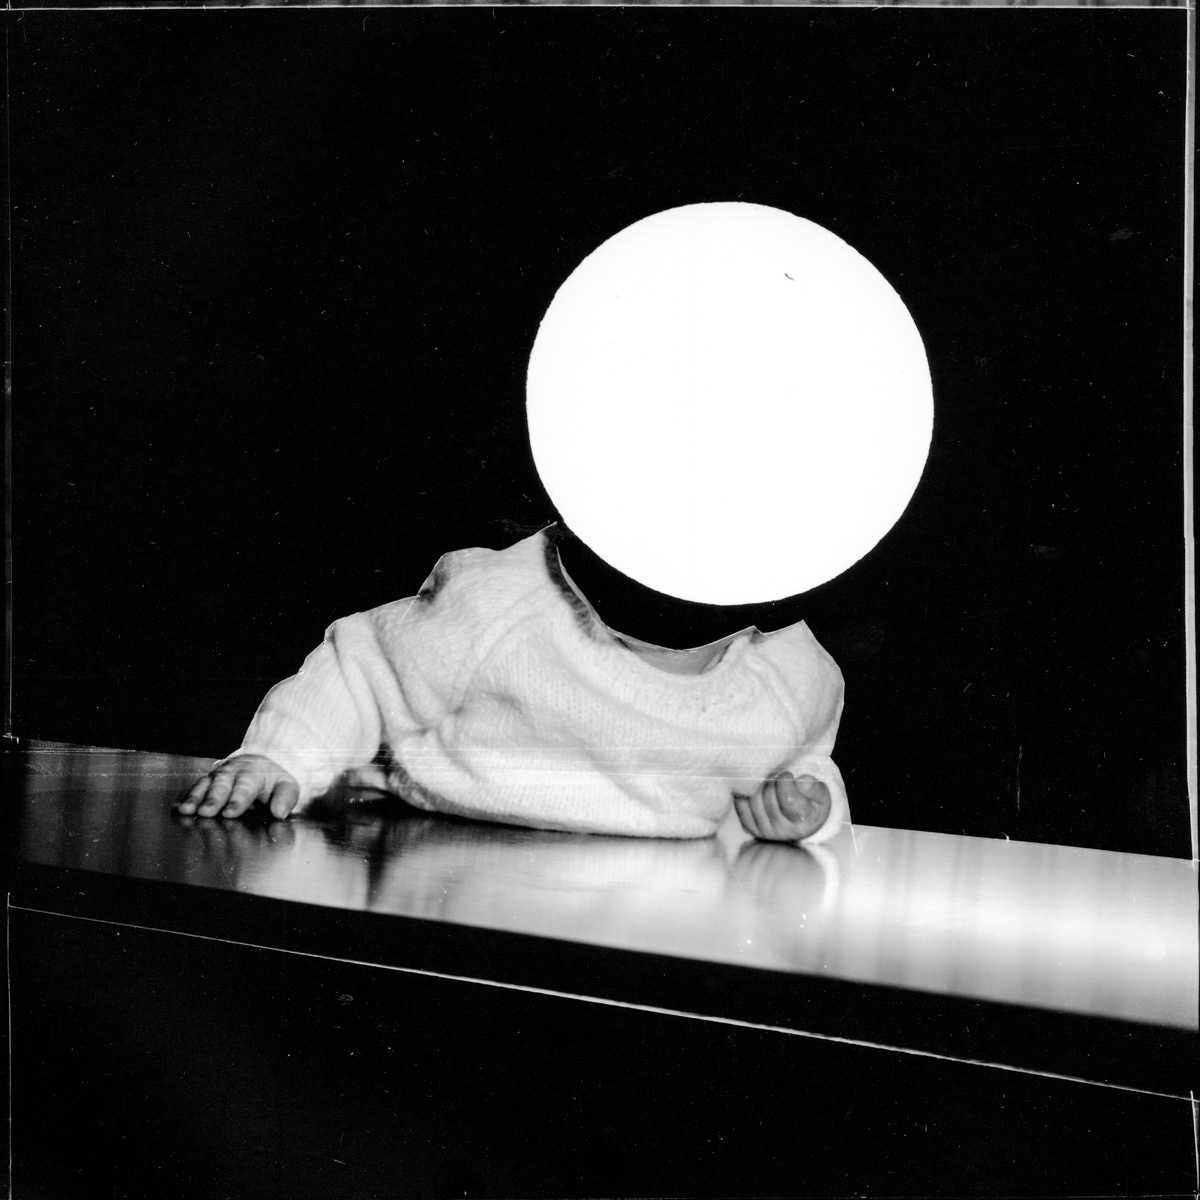 """""""0096"""" from the series The Children of Mars, by William Mokrynski"""